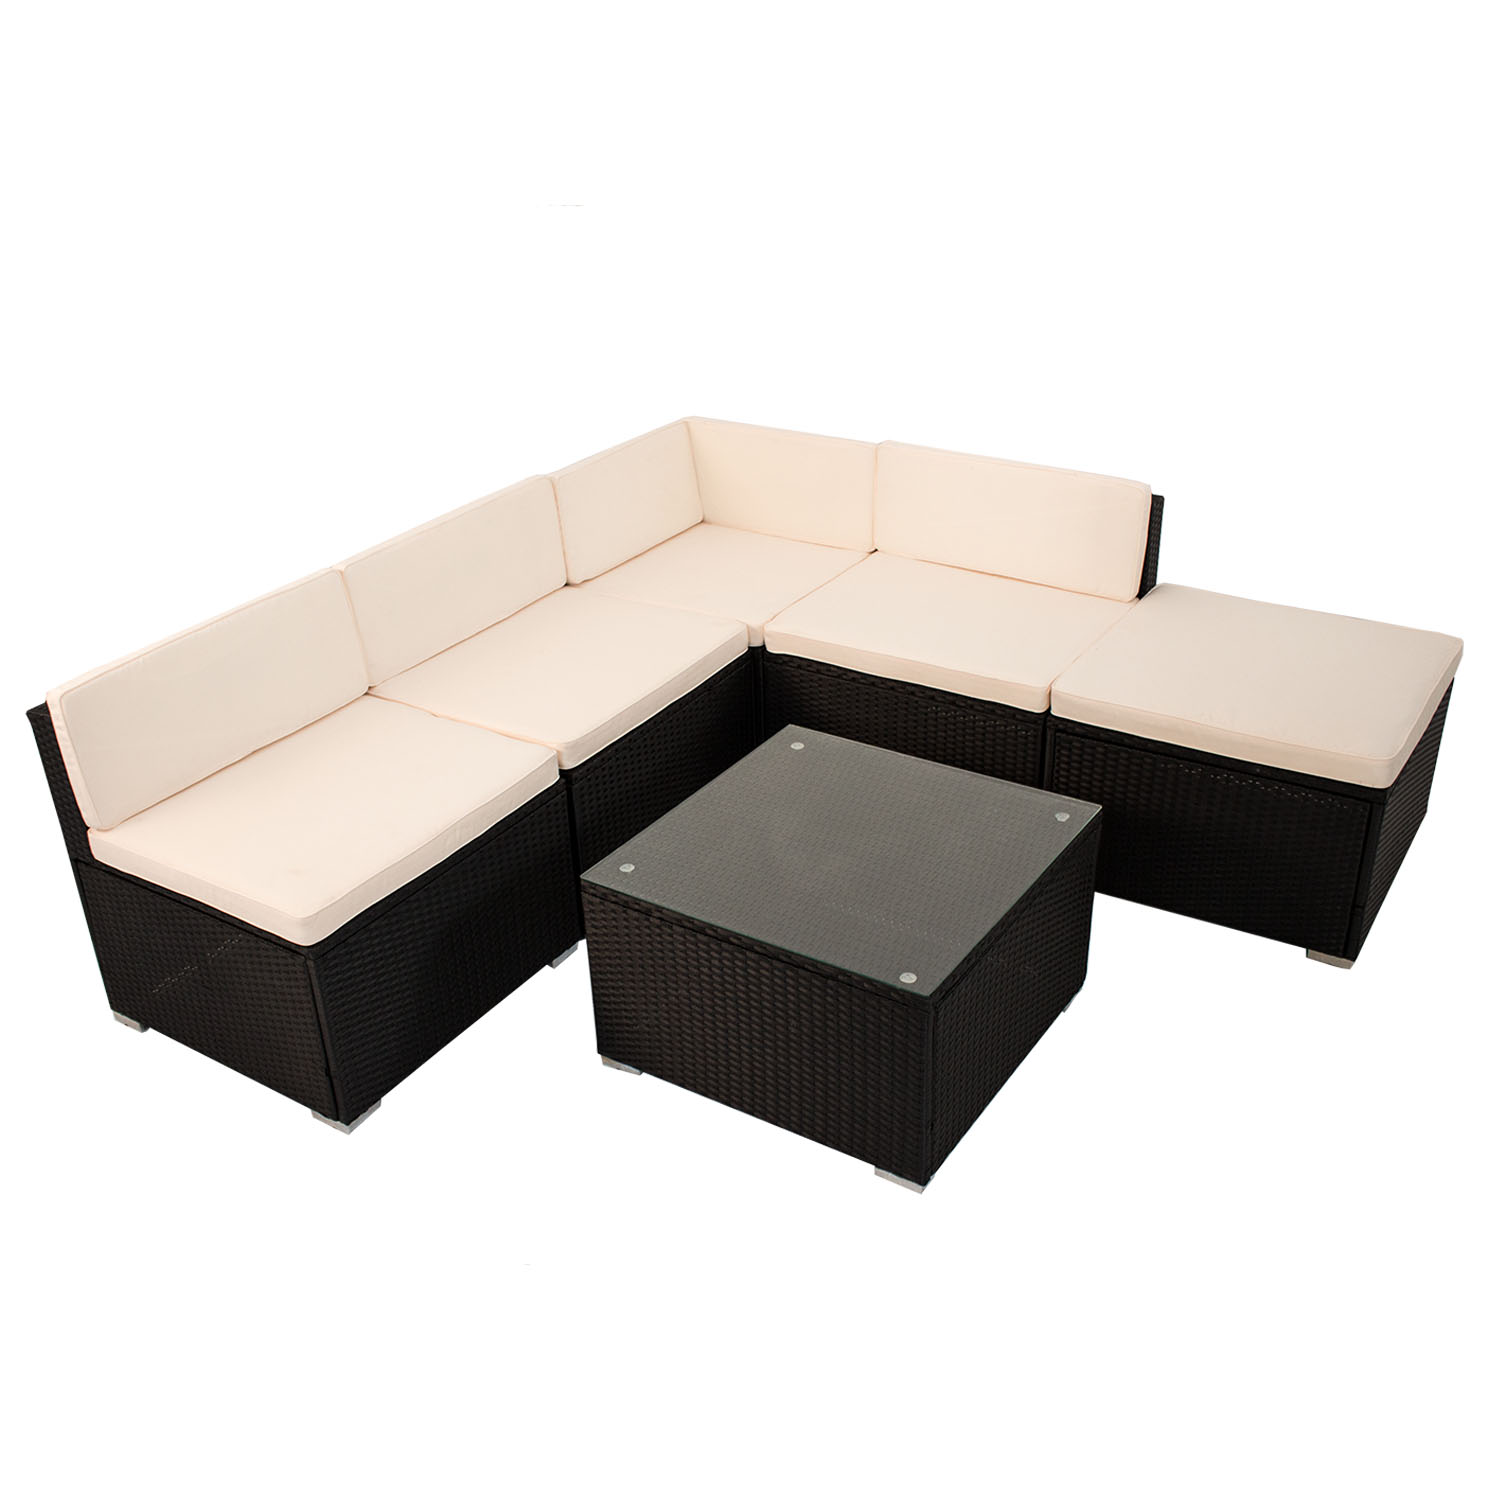 Loungemobel Rattan Amazon Beige Optik Rattan Set Lounge Polyrattan